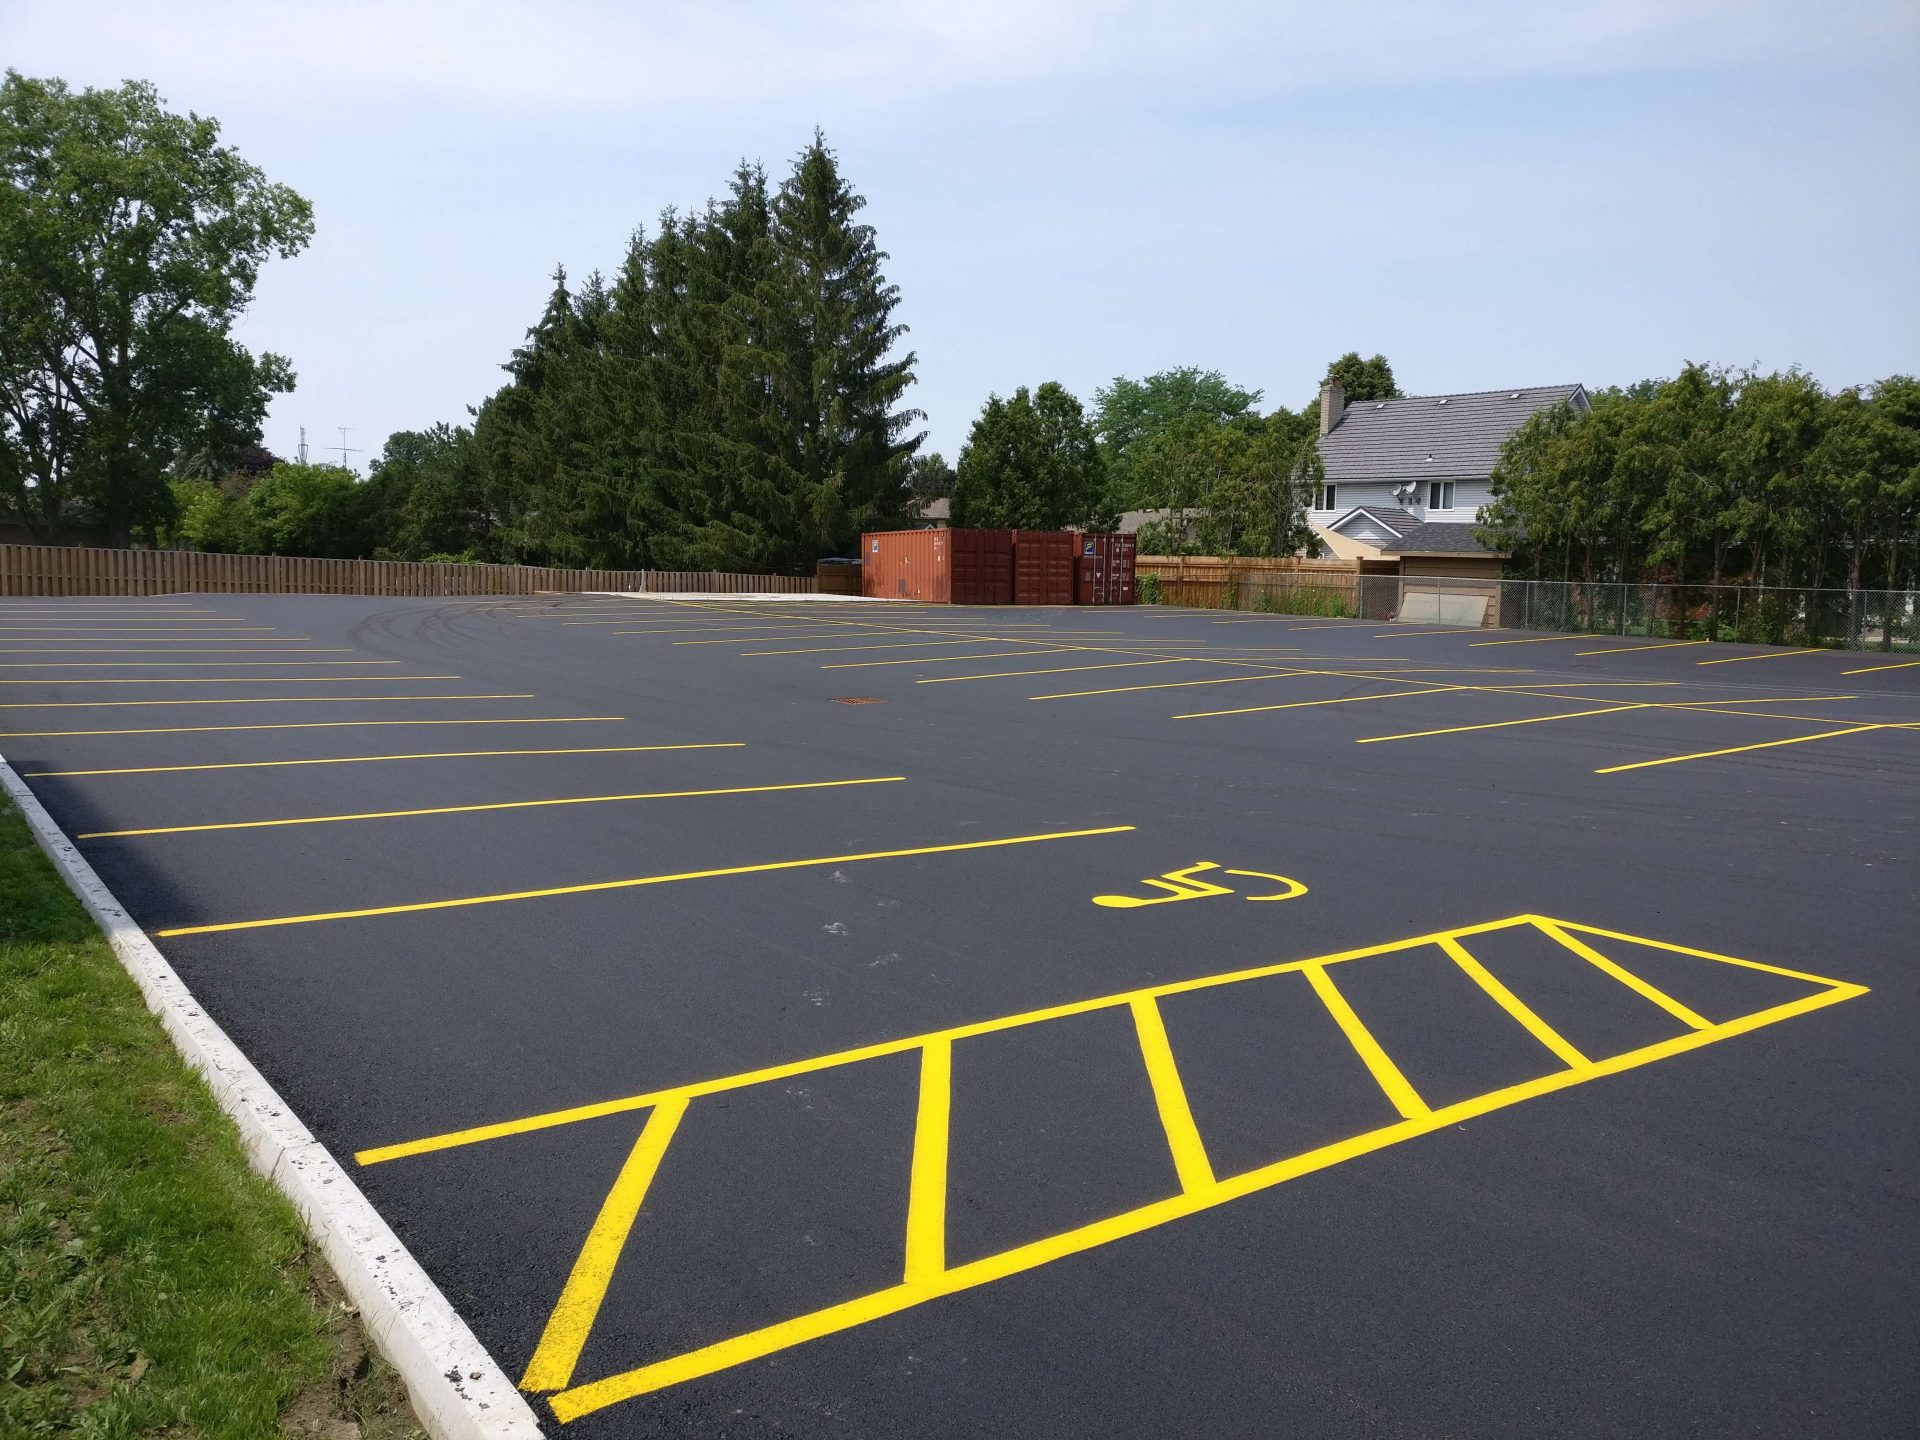 parking lot with yellow grid